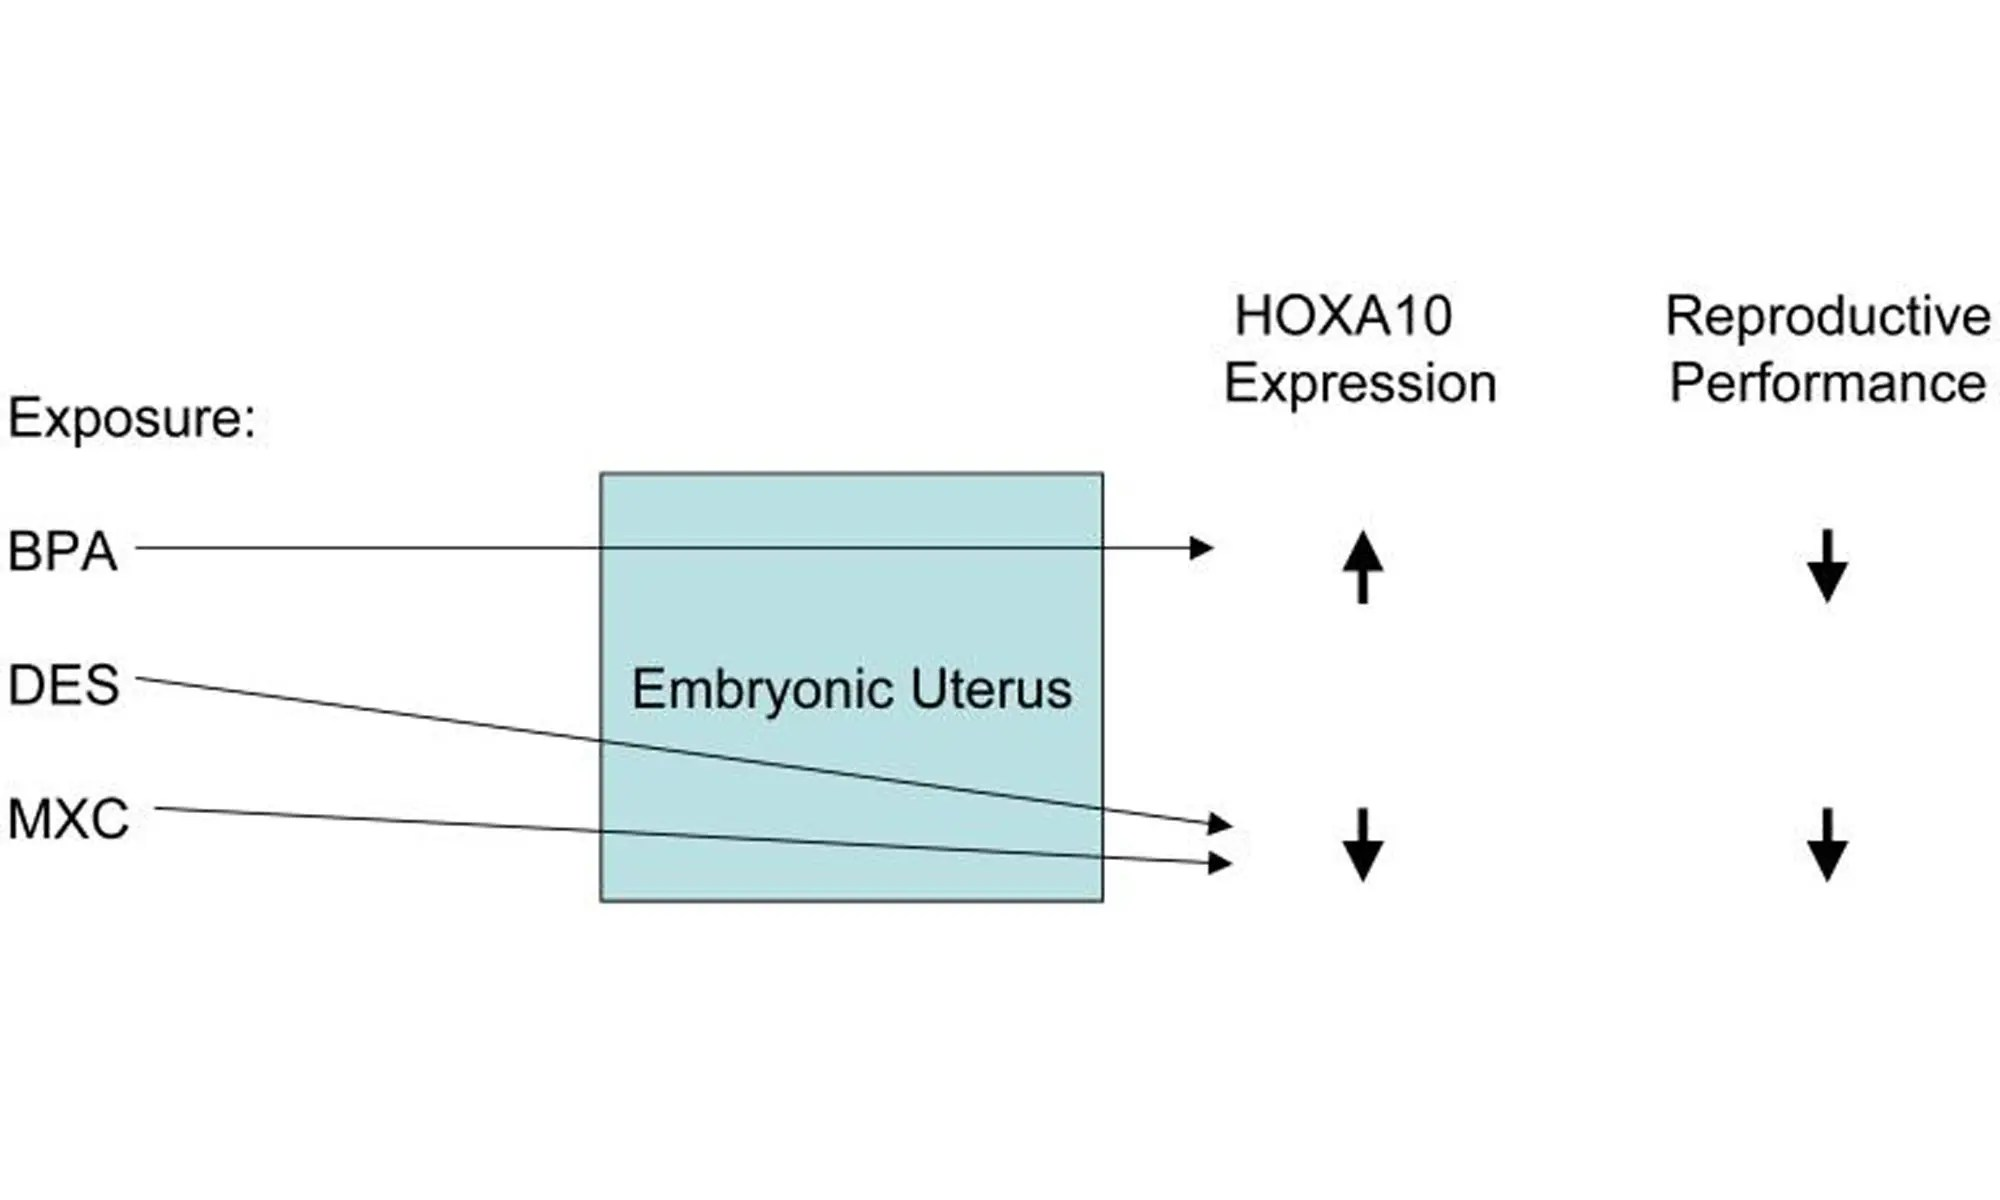 image of alters HOXA10 gene expression in the developing reproductive tract